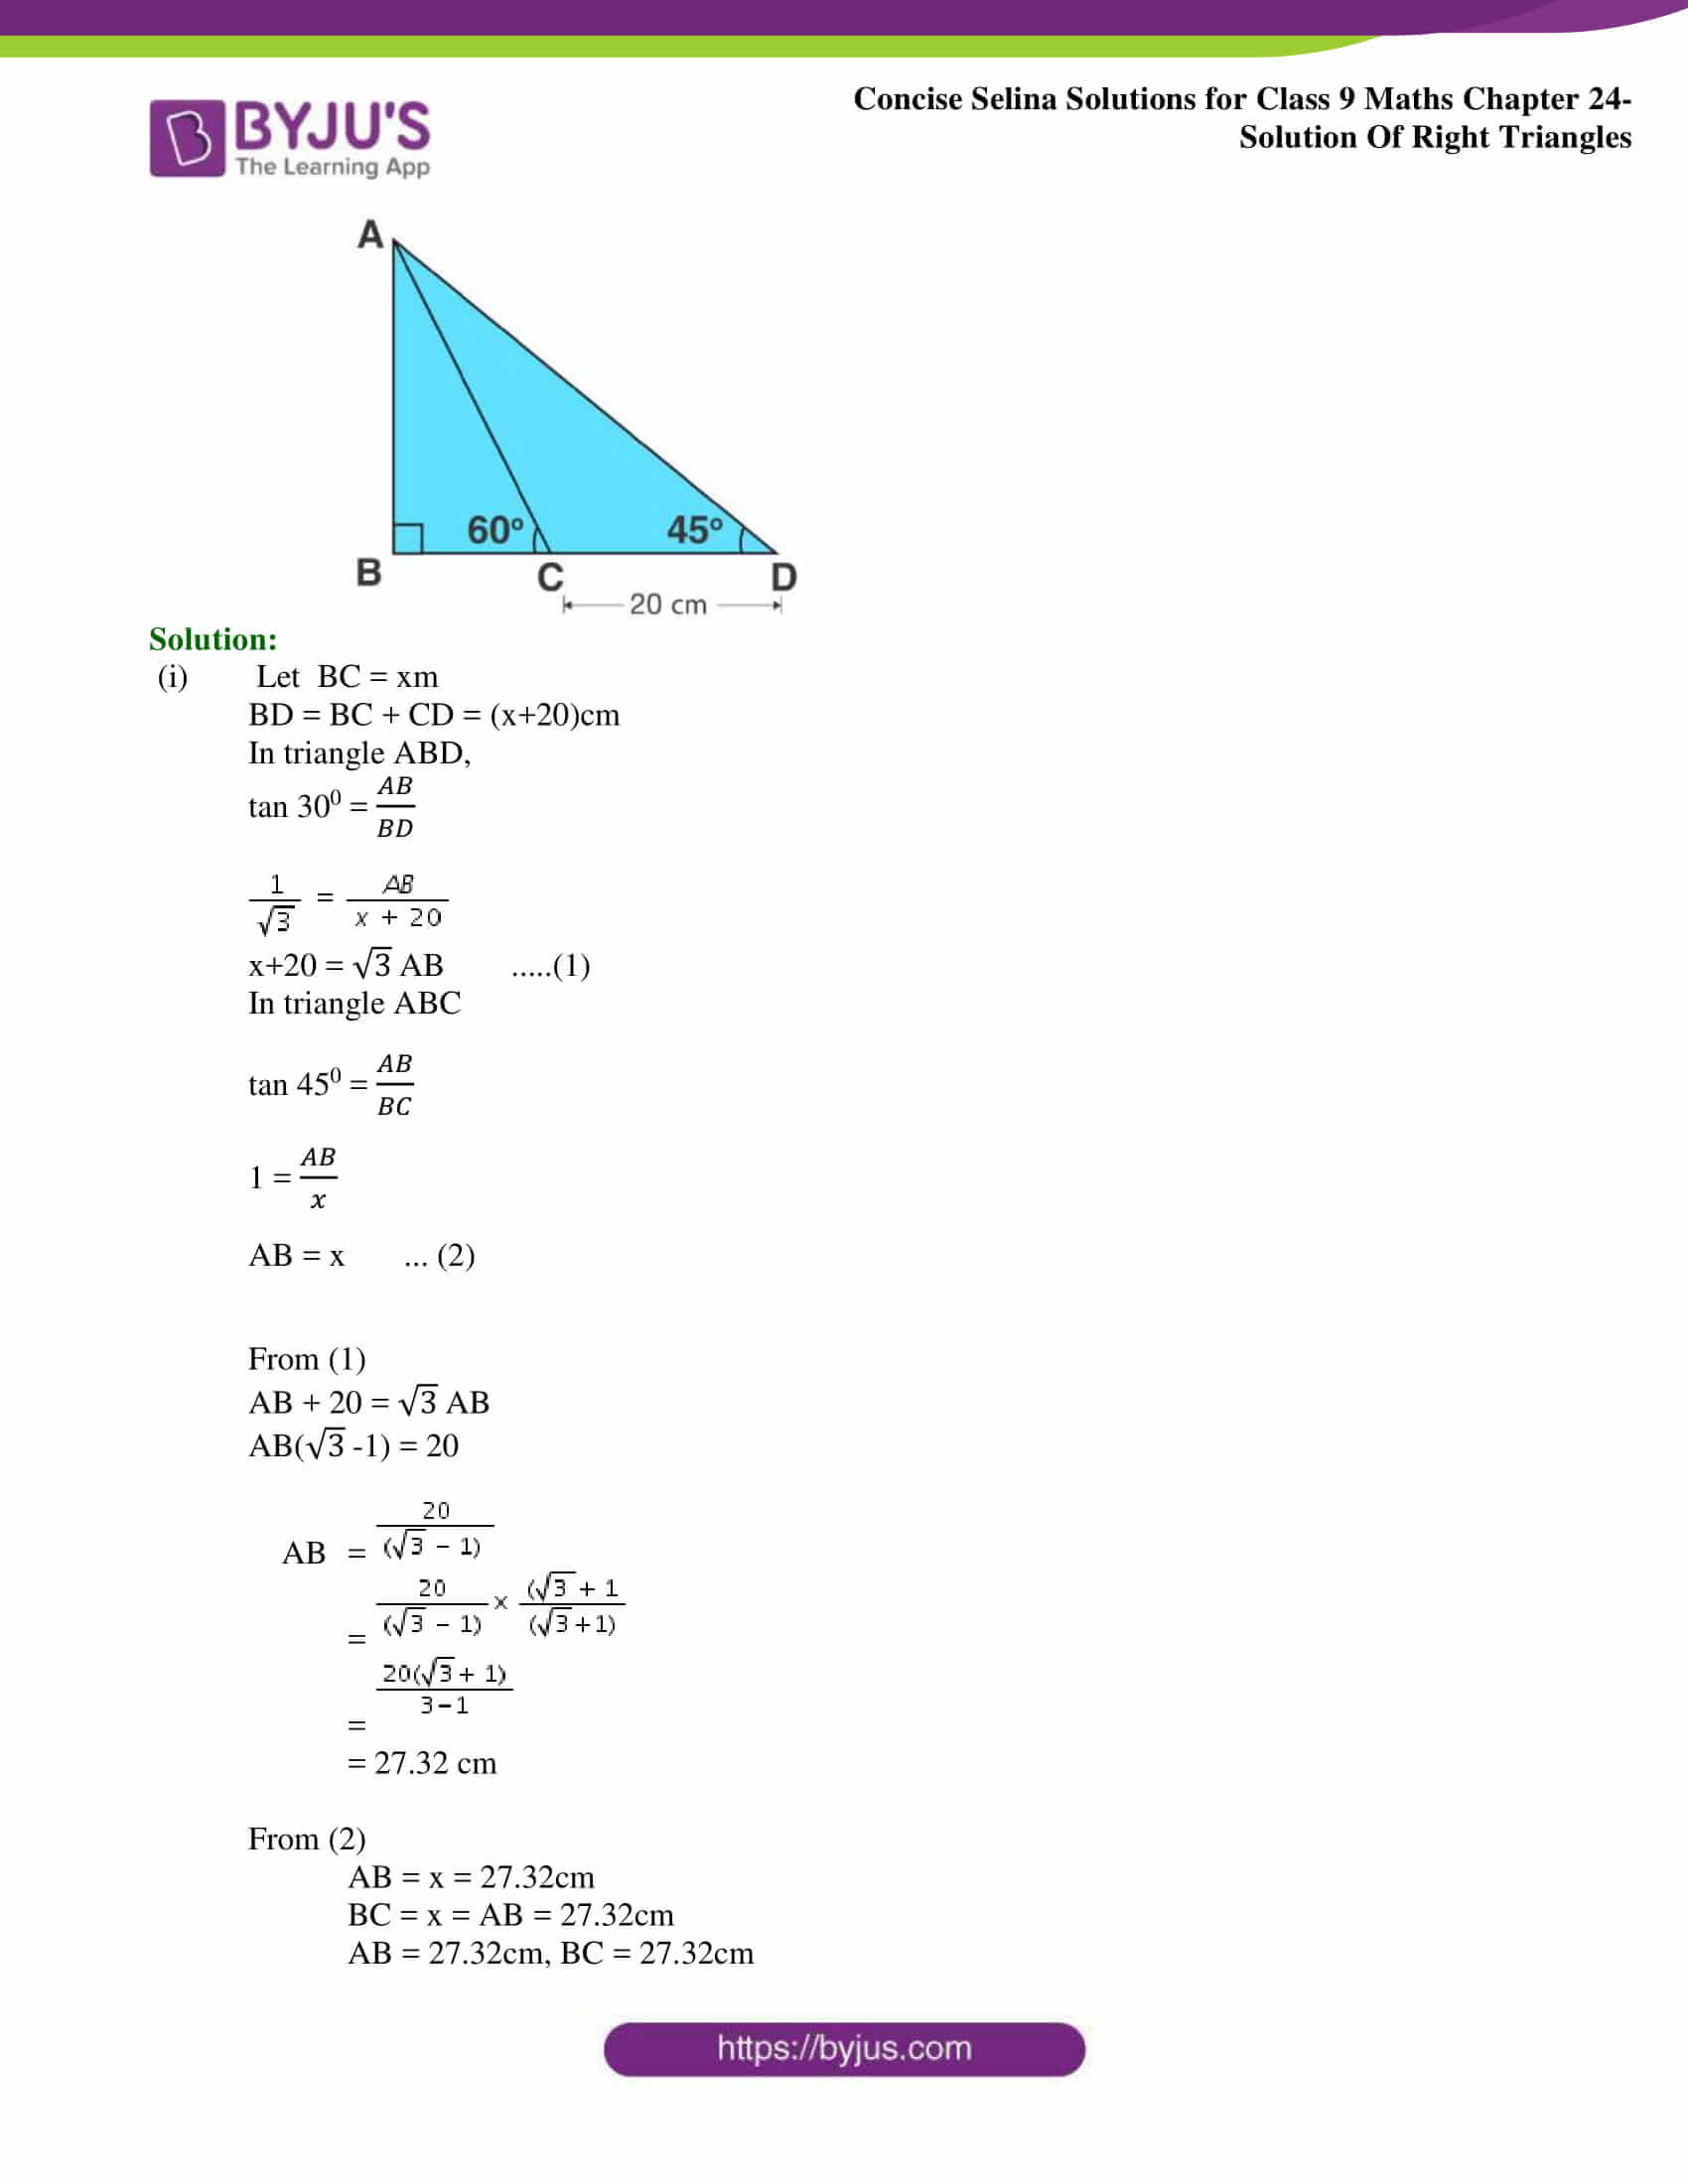 Concise Selina Solutions Class 9 Maths Chapter 24 Solution Of Right Triangles part 18